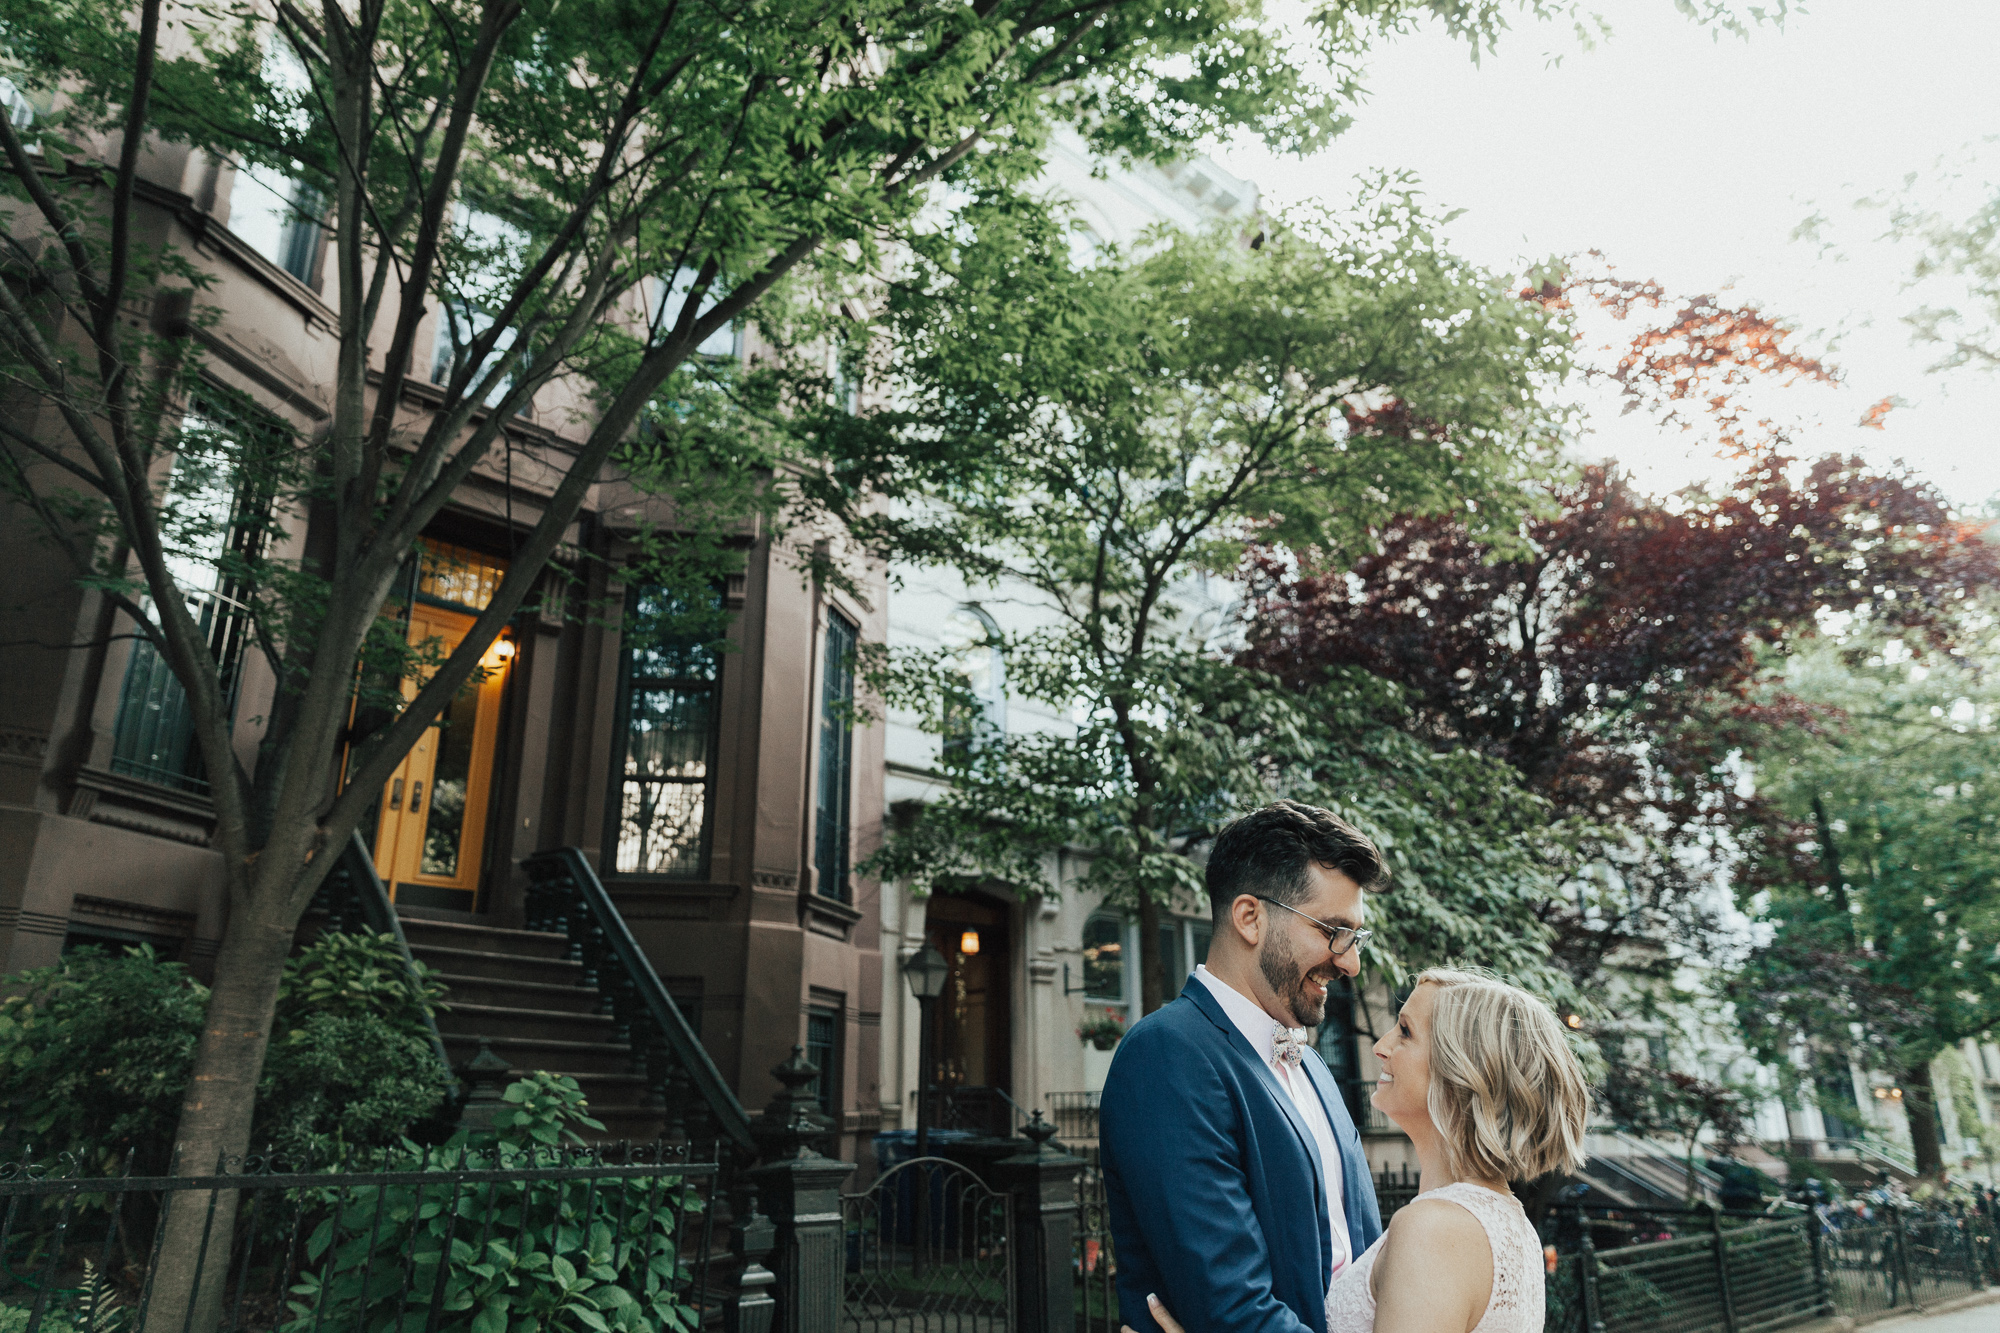 brooklyn_nyc_engagement_photography-16-of-83.jpg